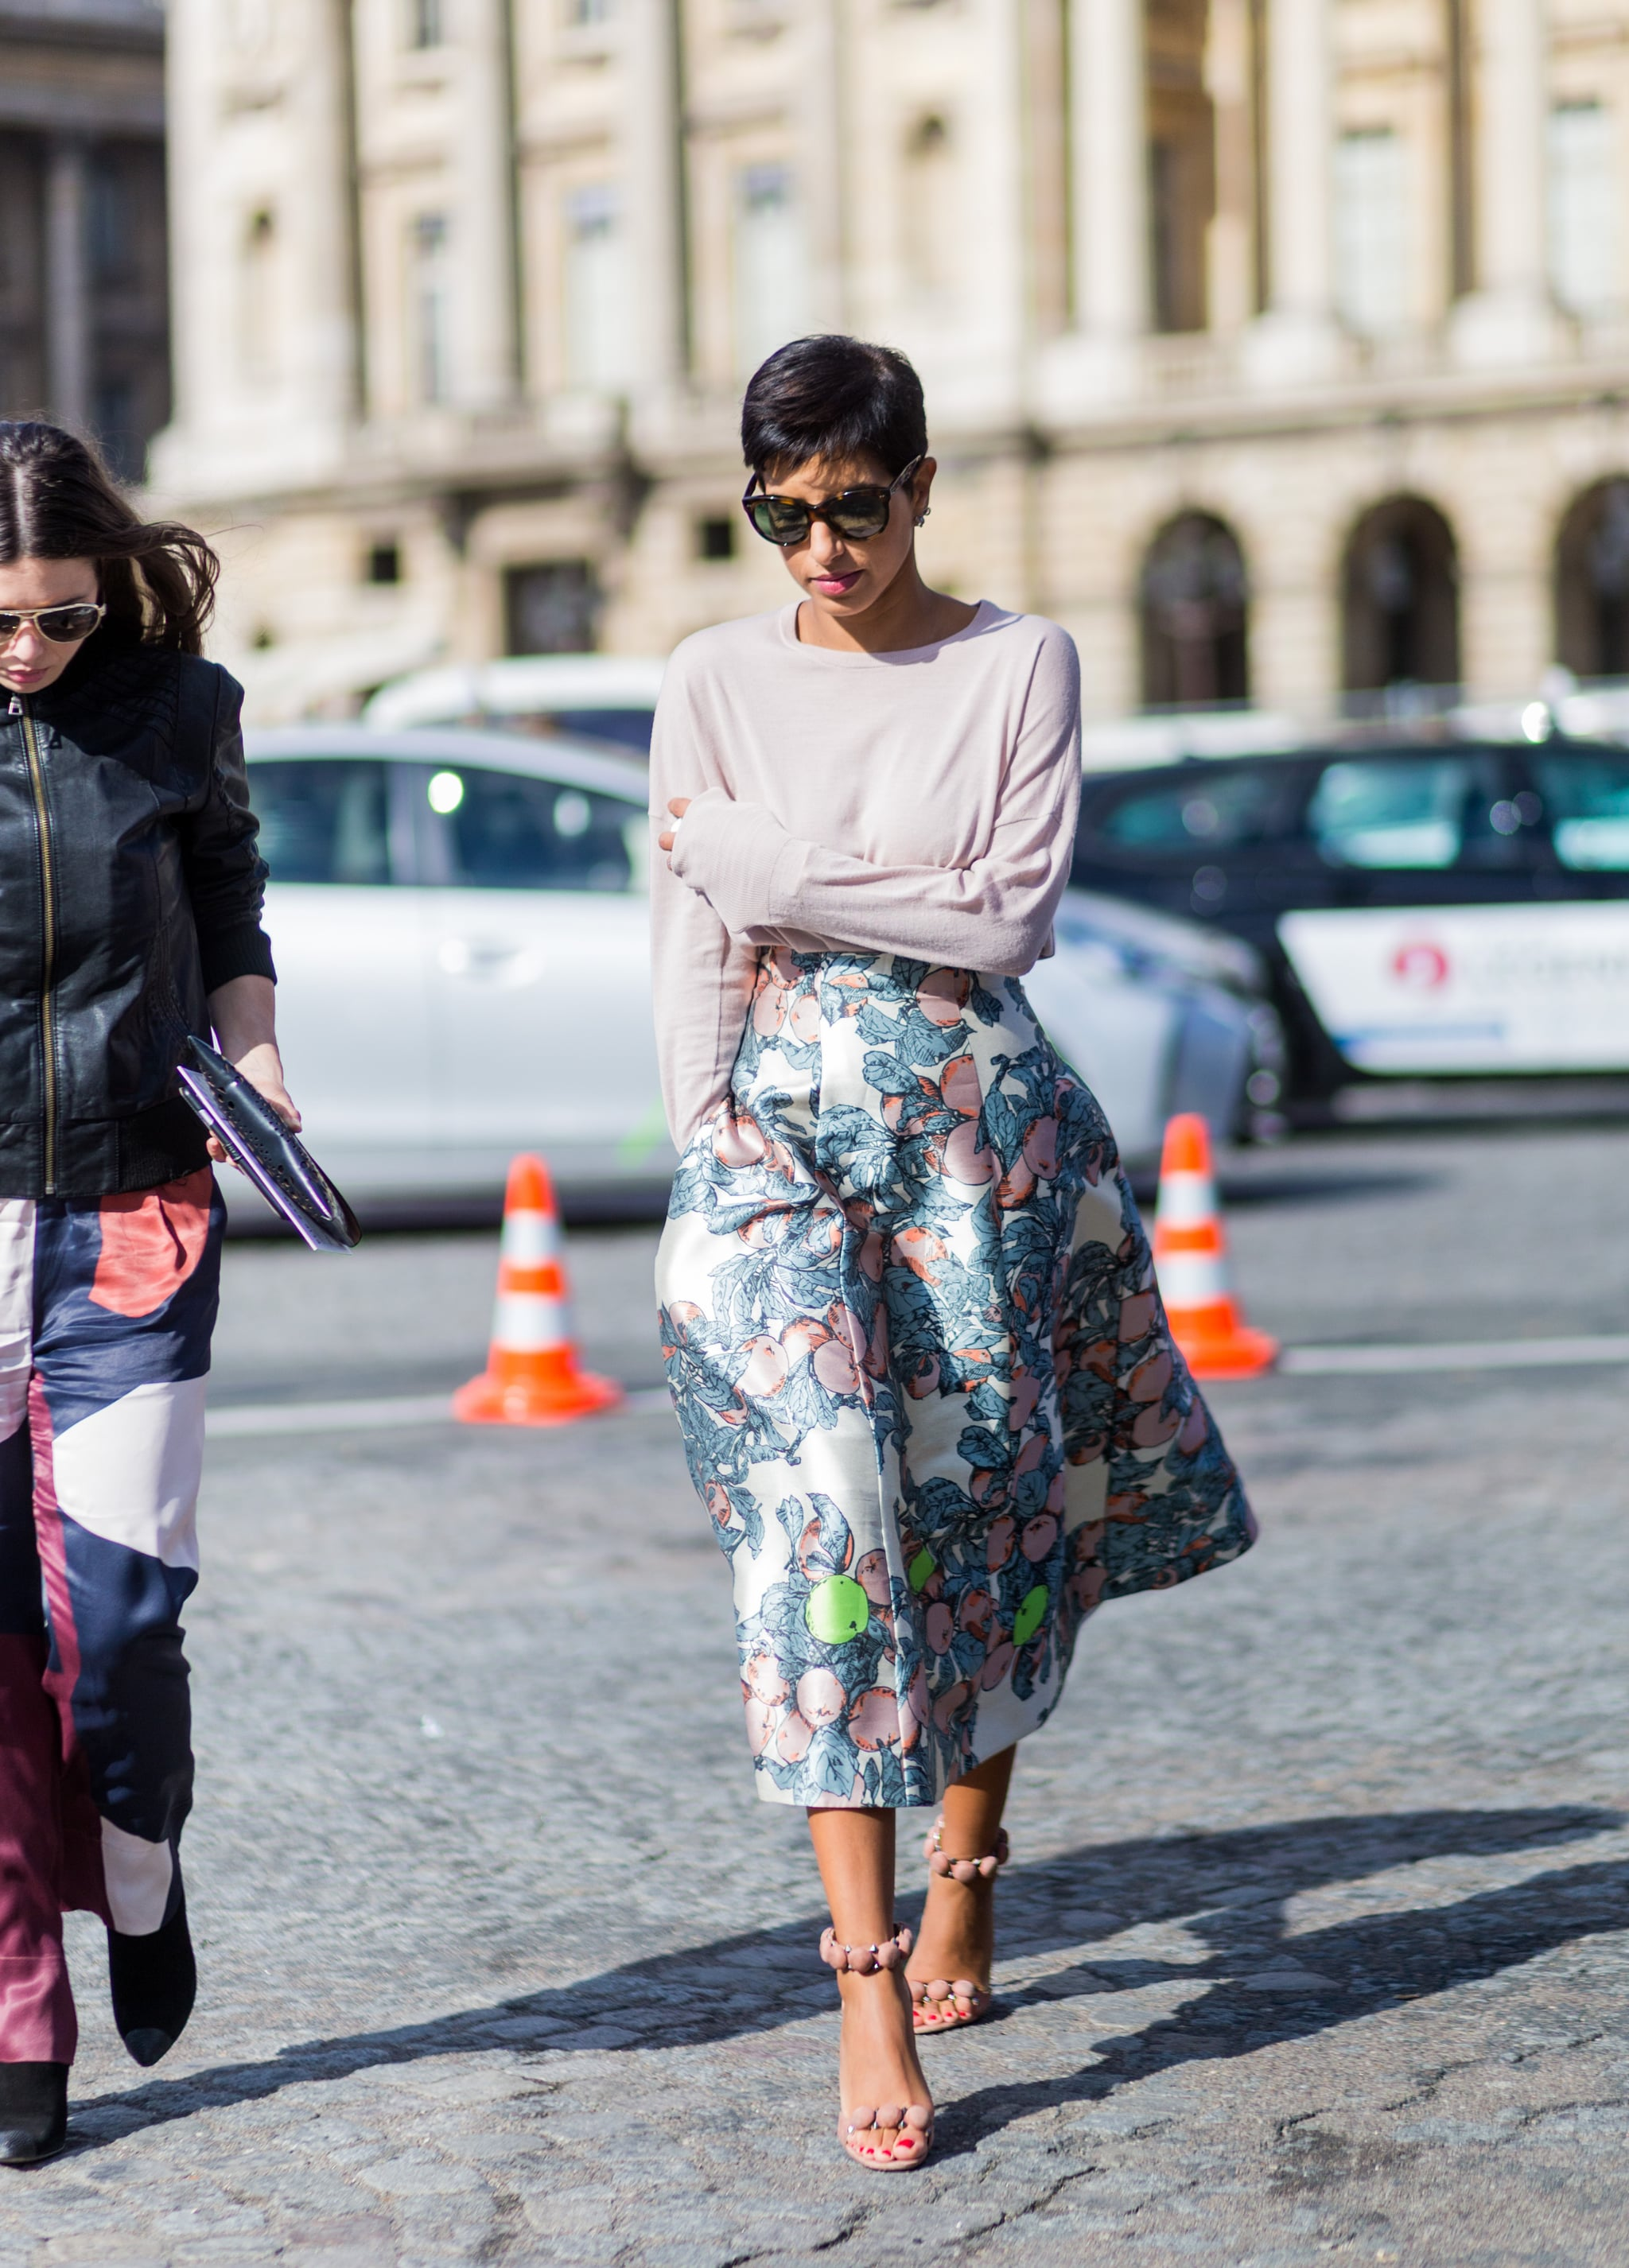 Her-Fashion-Week-Outfits-Always-Street-Style-Approved.jpg